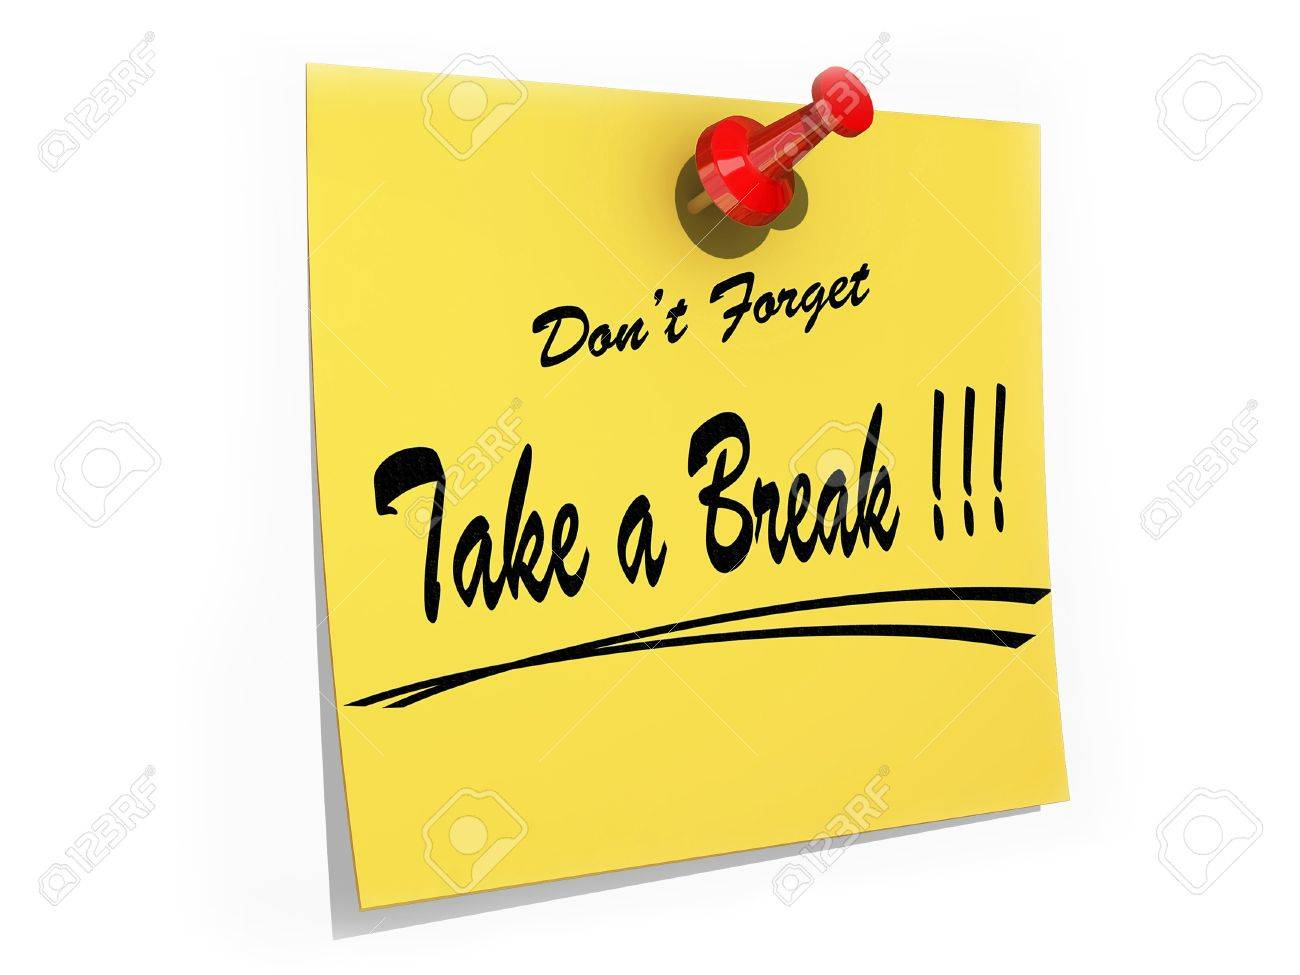 A note pinned to a cork board with the text Don't Forget Take a Break. Stock Photo - 19081193